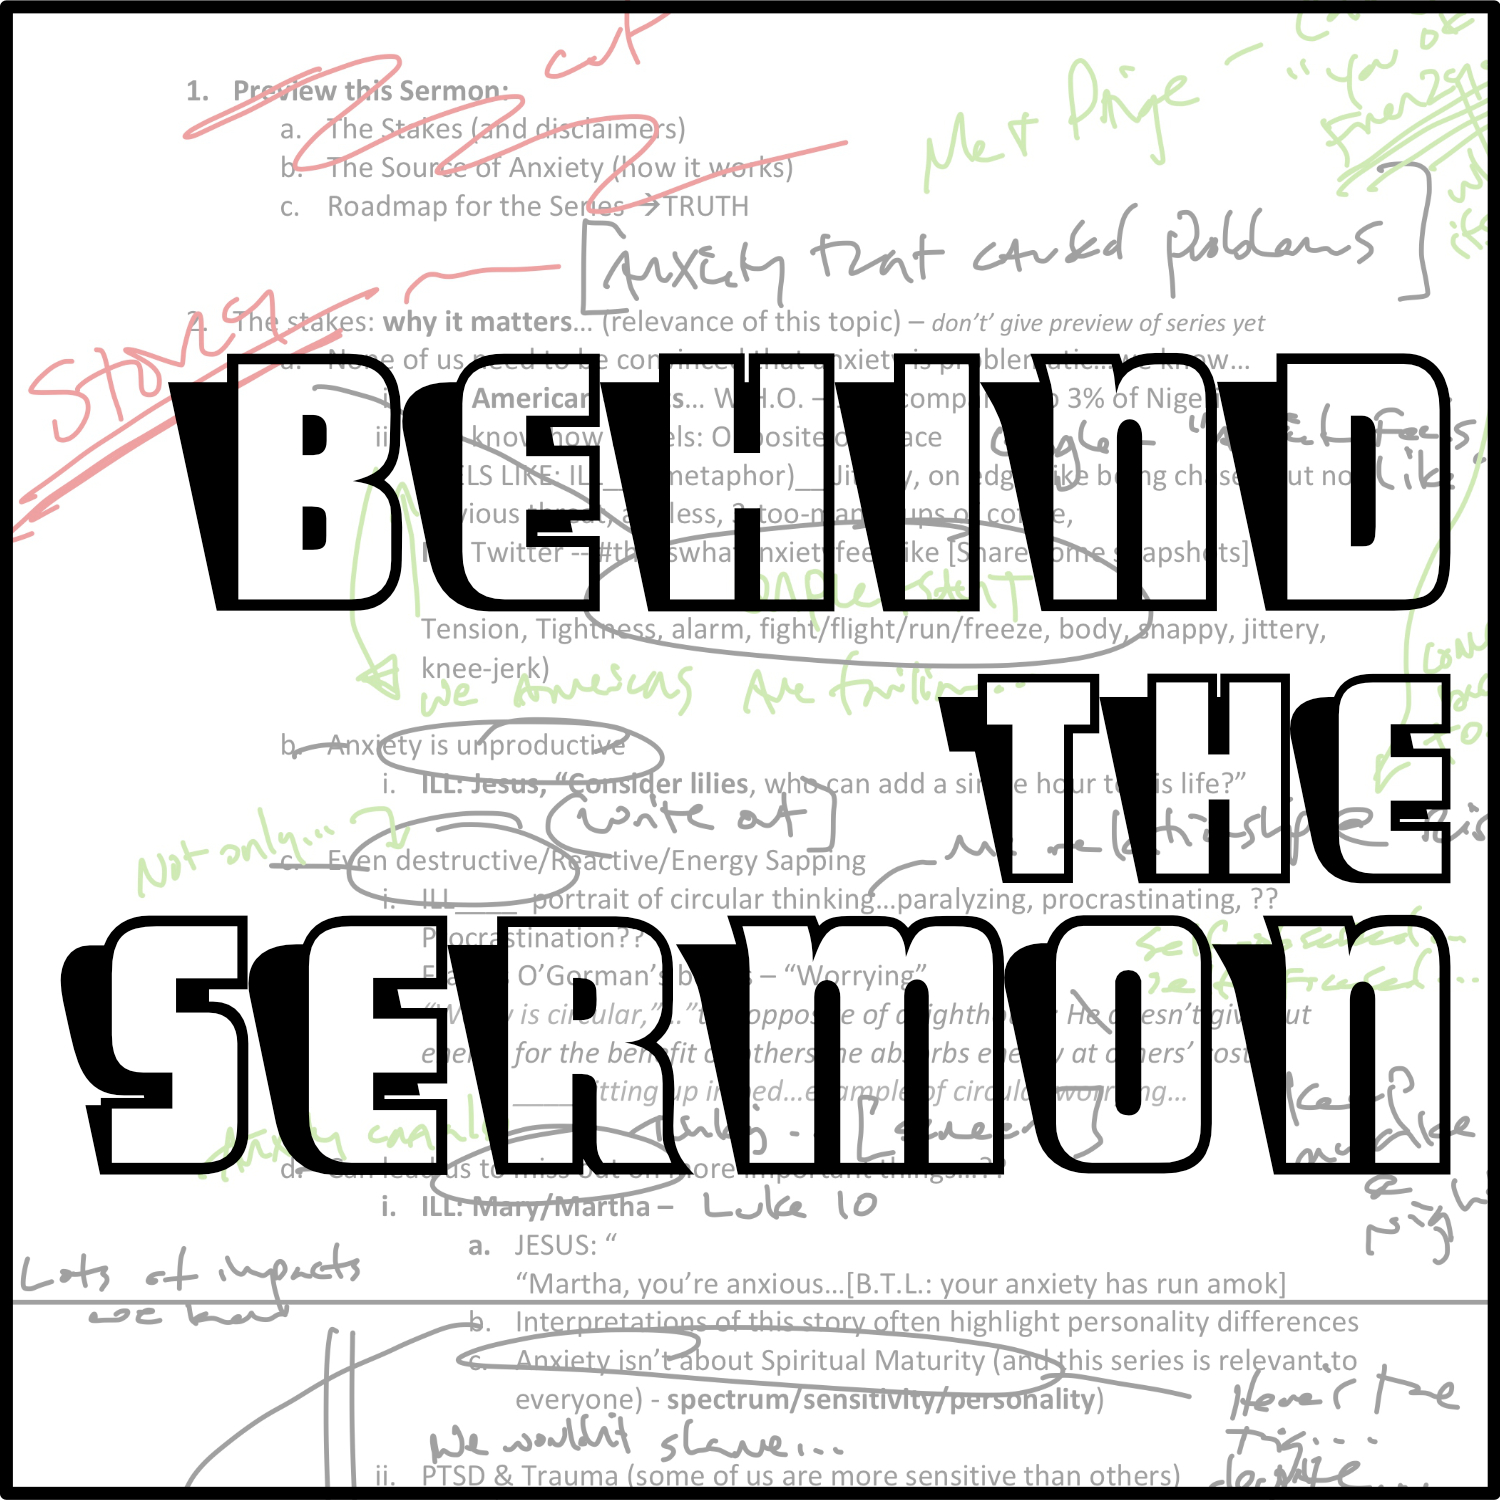 BehindTheSermon - border logo (Smaller for POdcast) - .jpg